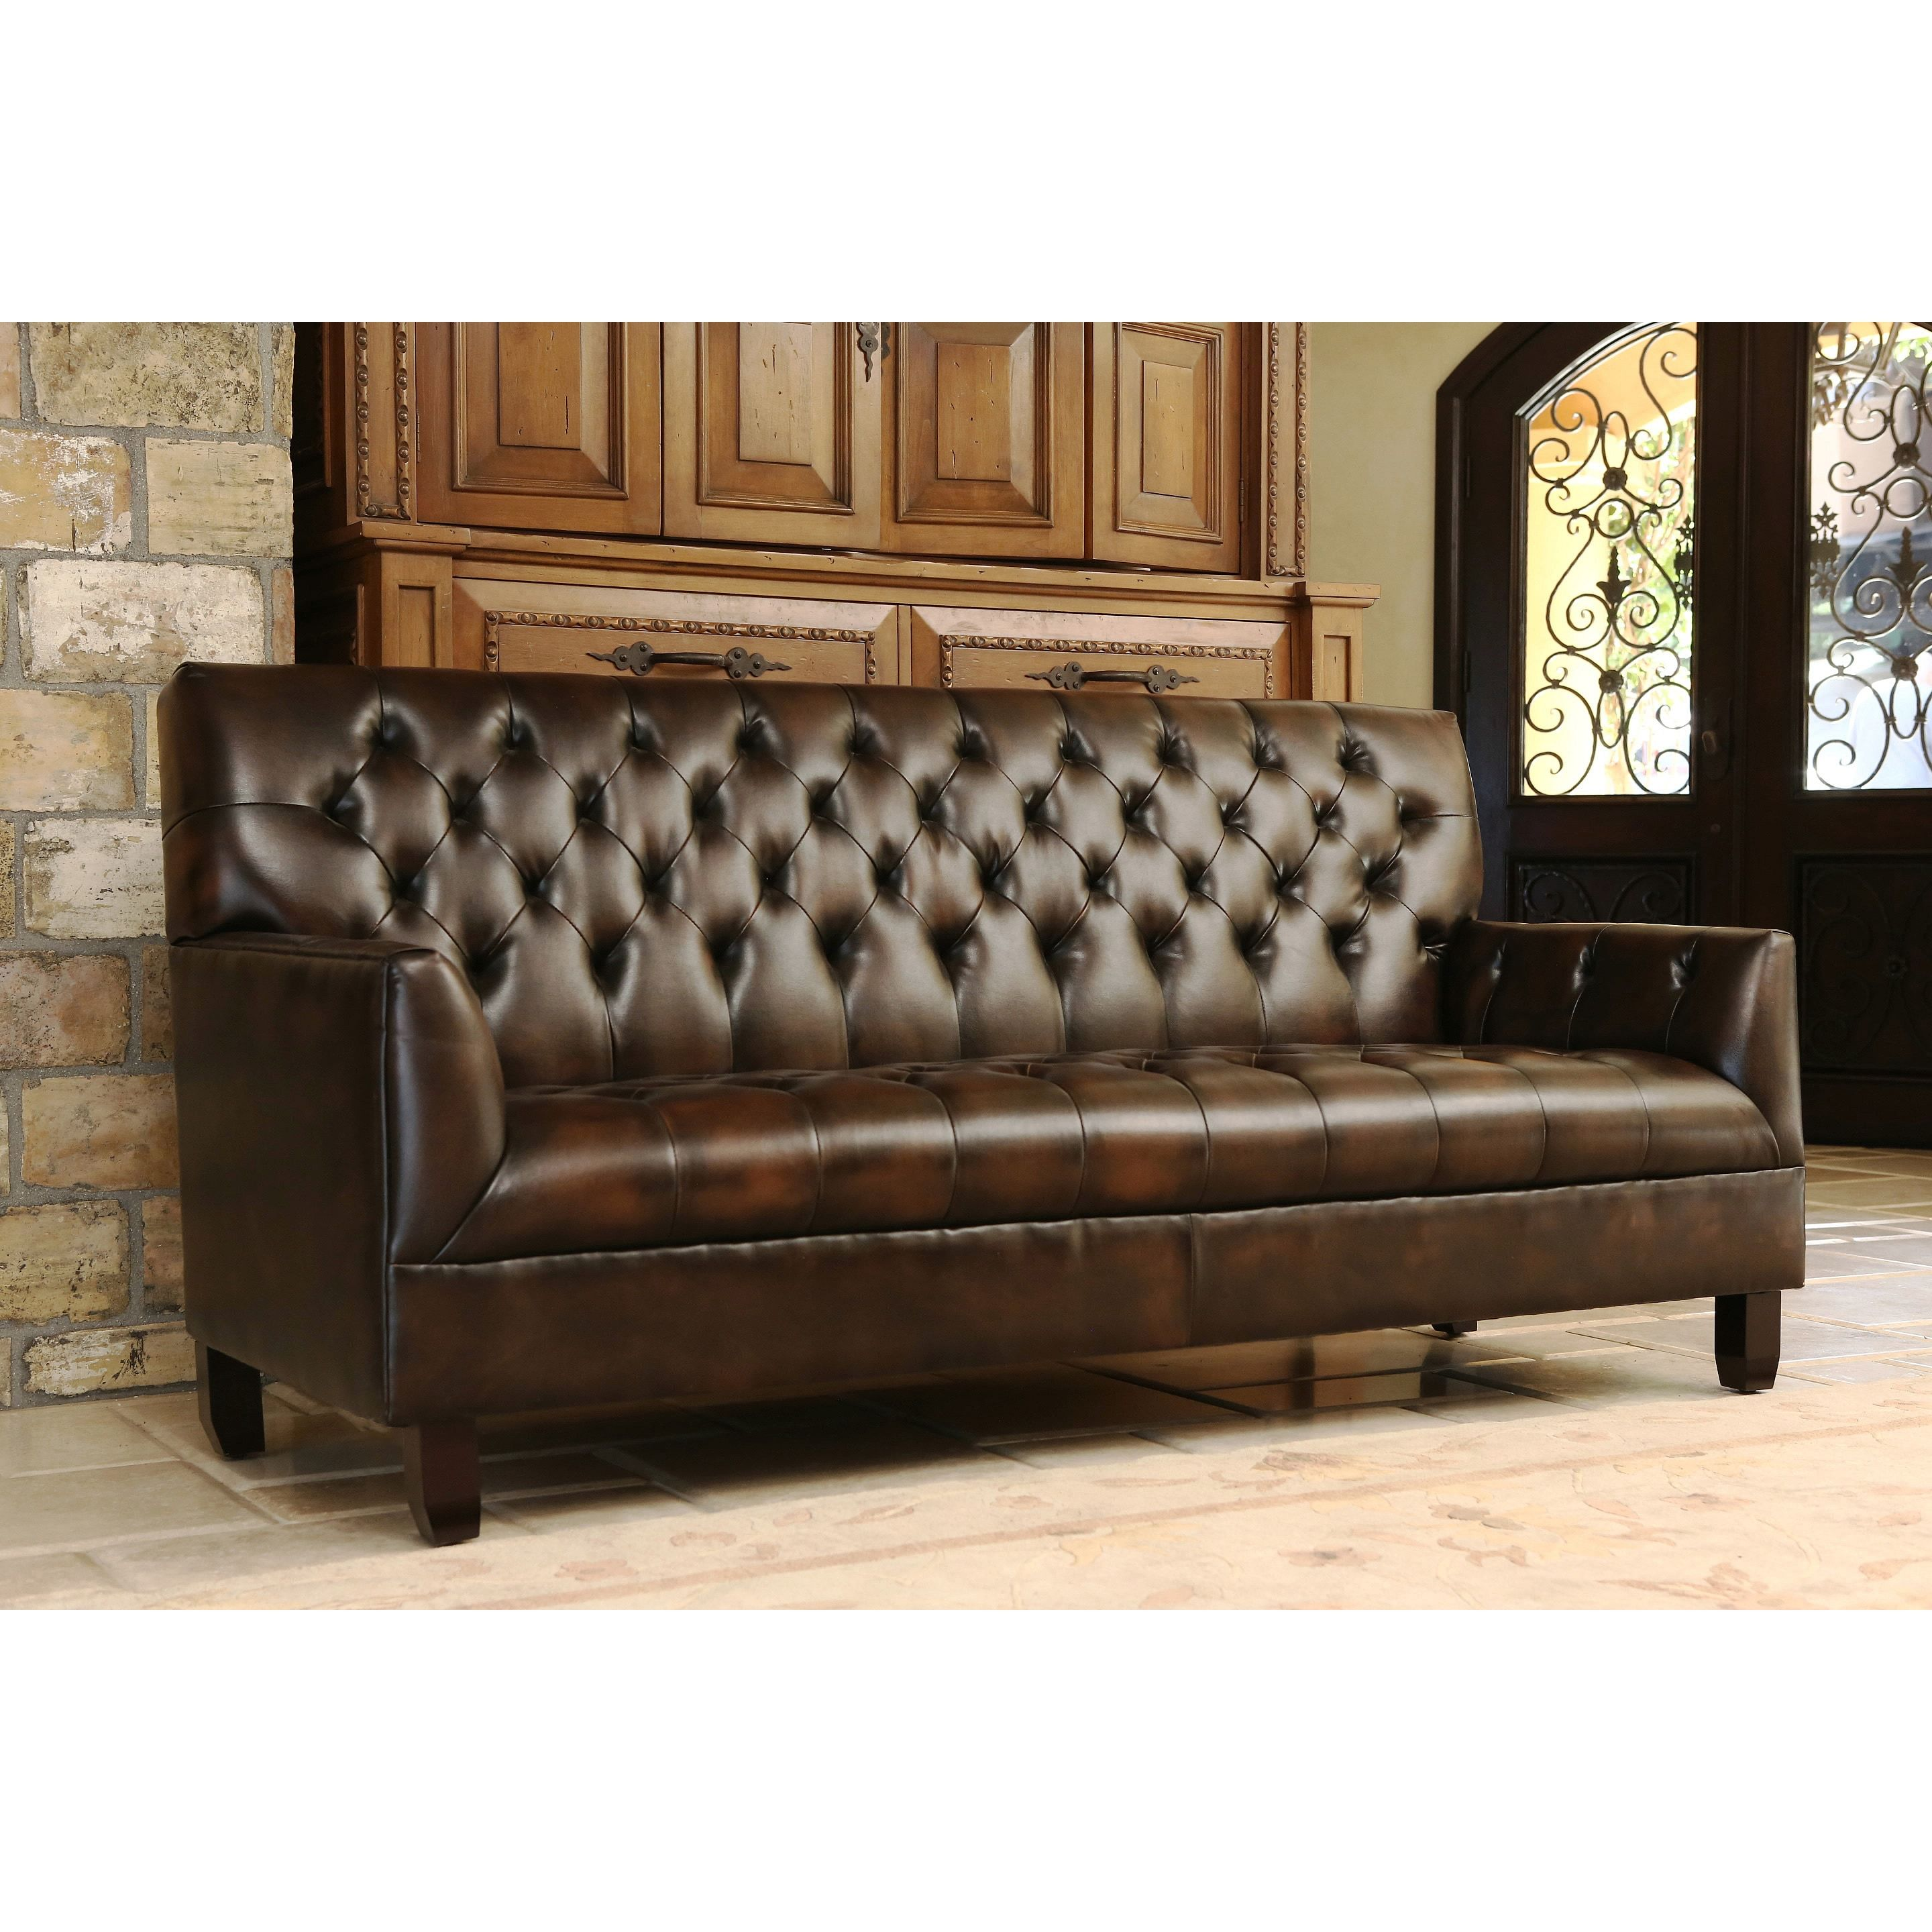 Overstock Com Online Shopping Bedding Furniture Electronics Jewelry Clothing More Leather Sofa And Loveseat Brown Tufted Leather Sofa Tufted Leather Sofa